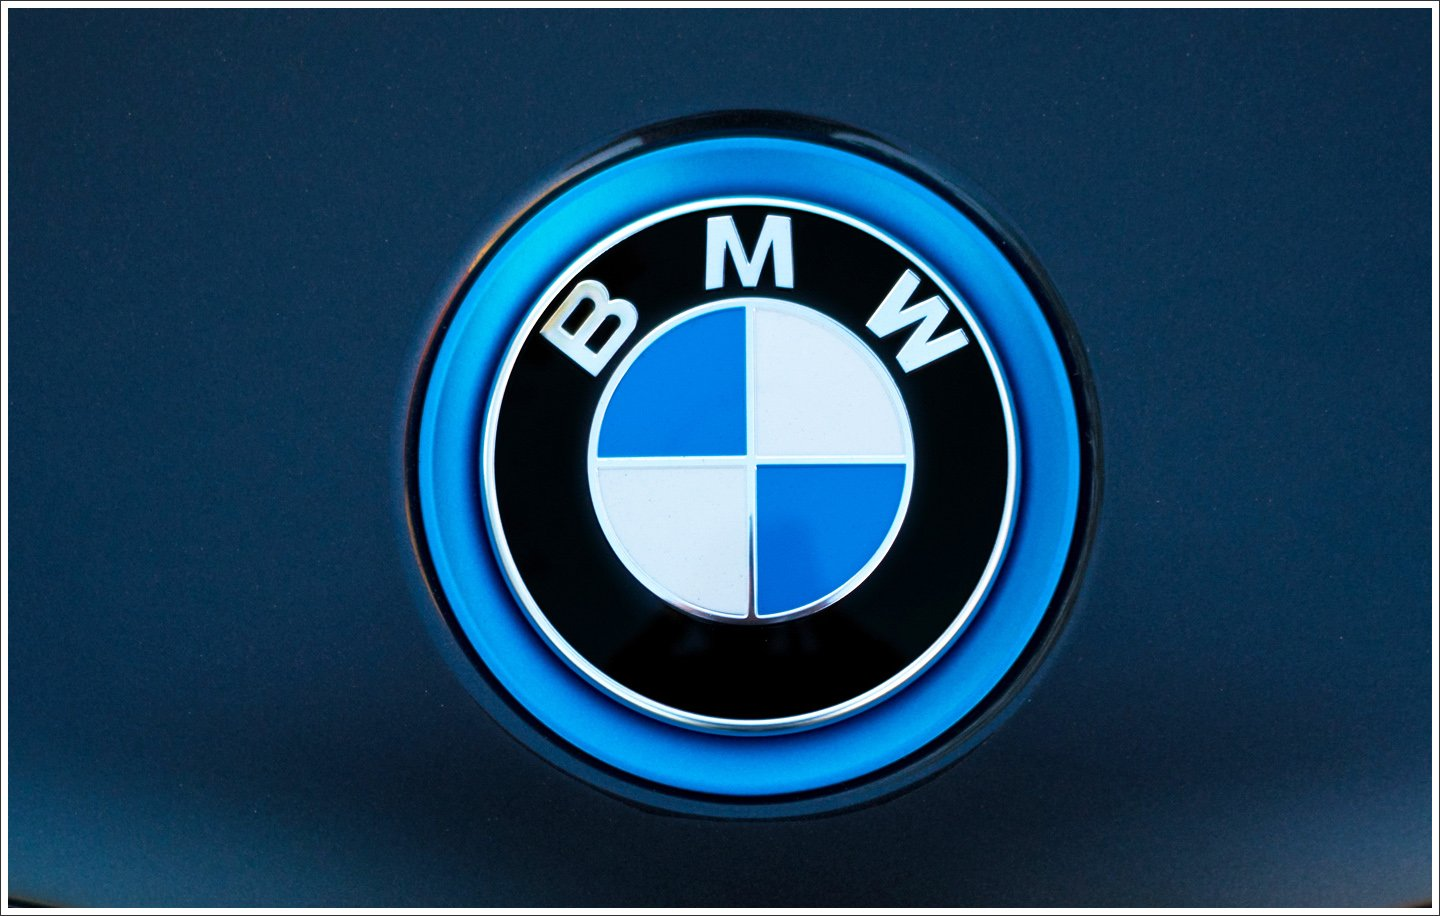 Bmw Logo Meaning And History Latest Models World Cars Brands